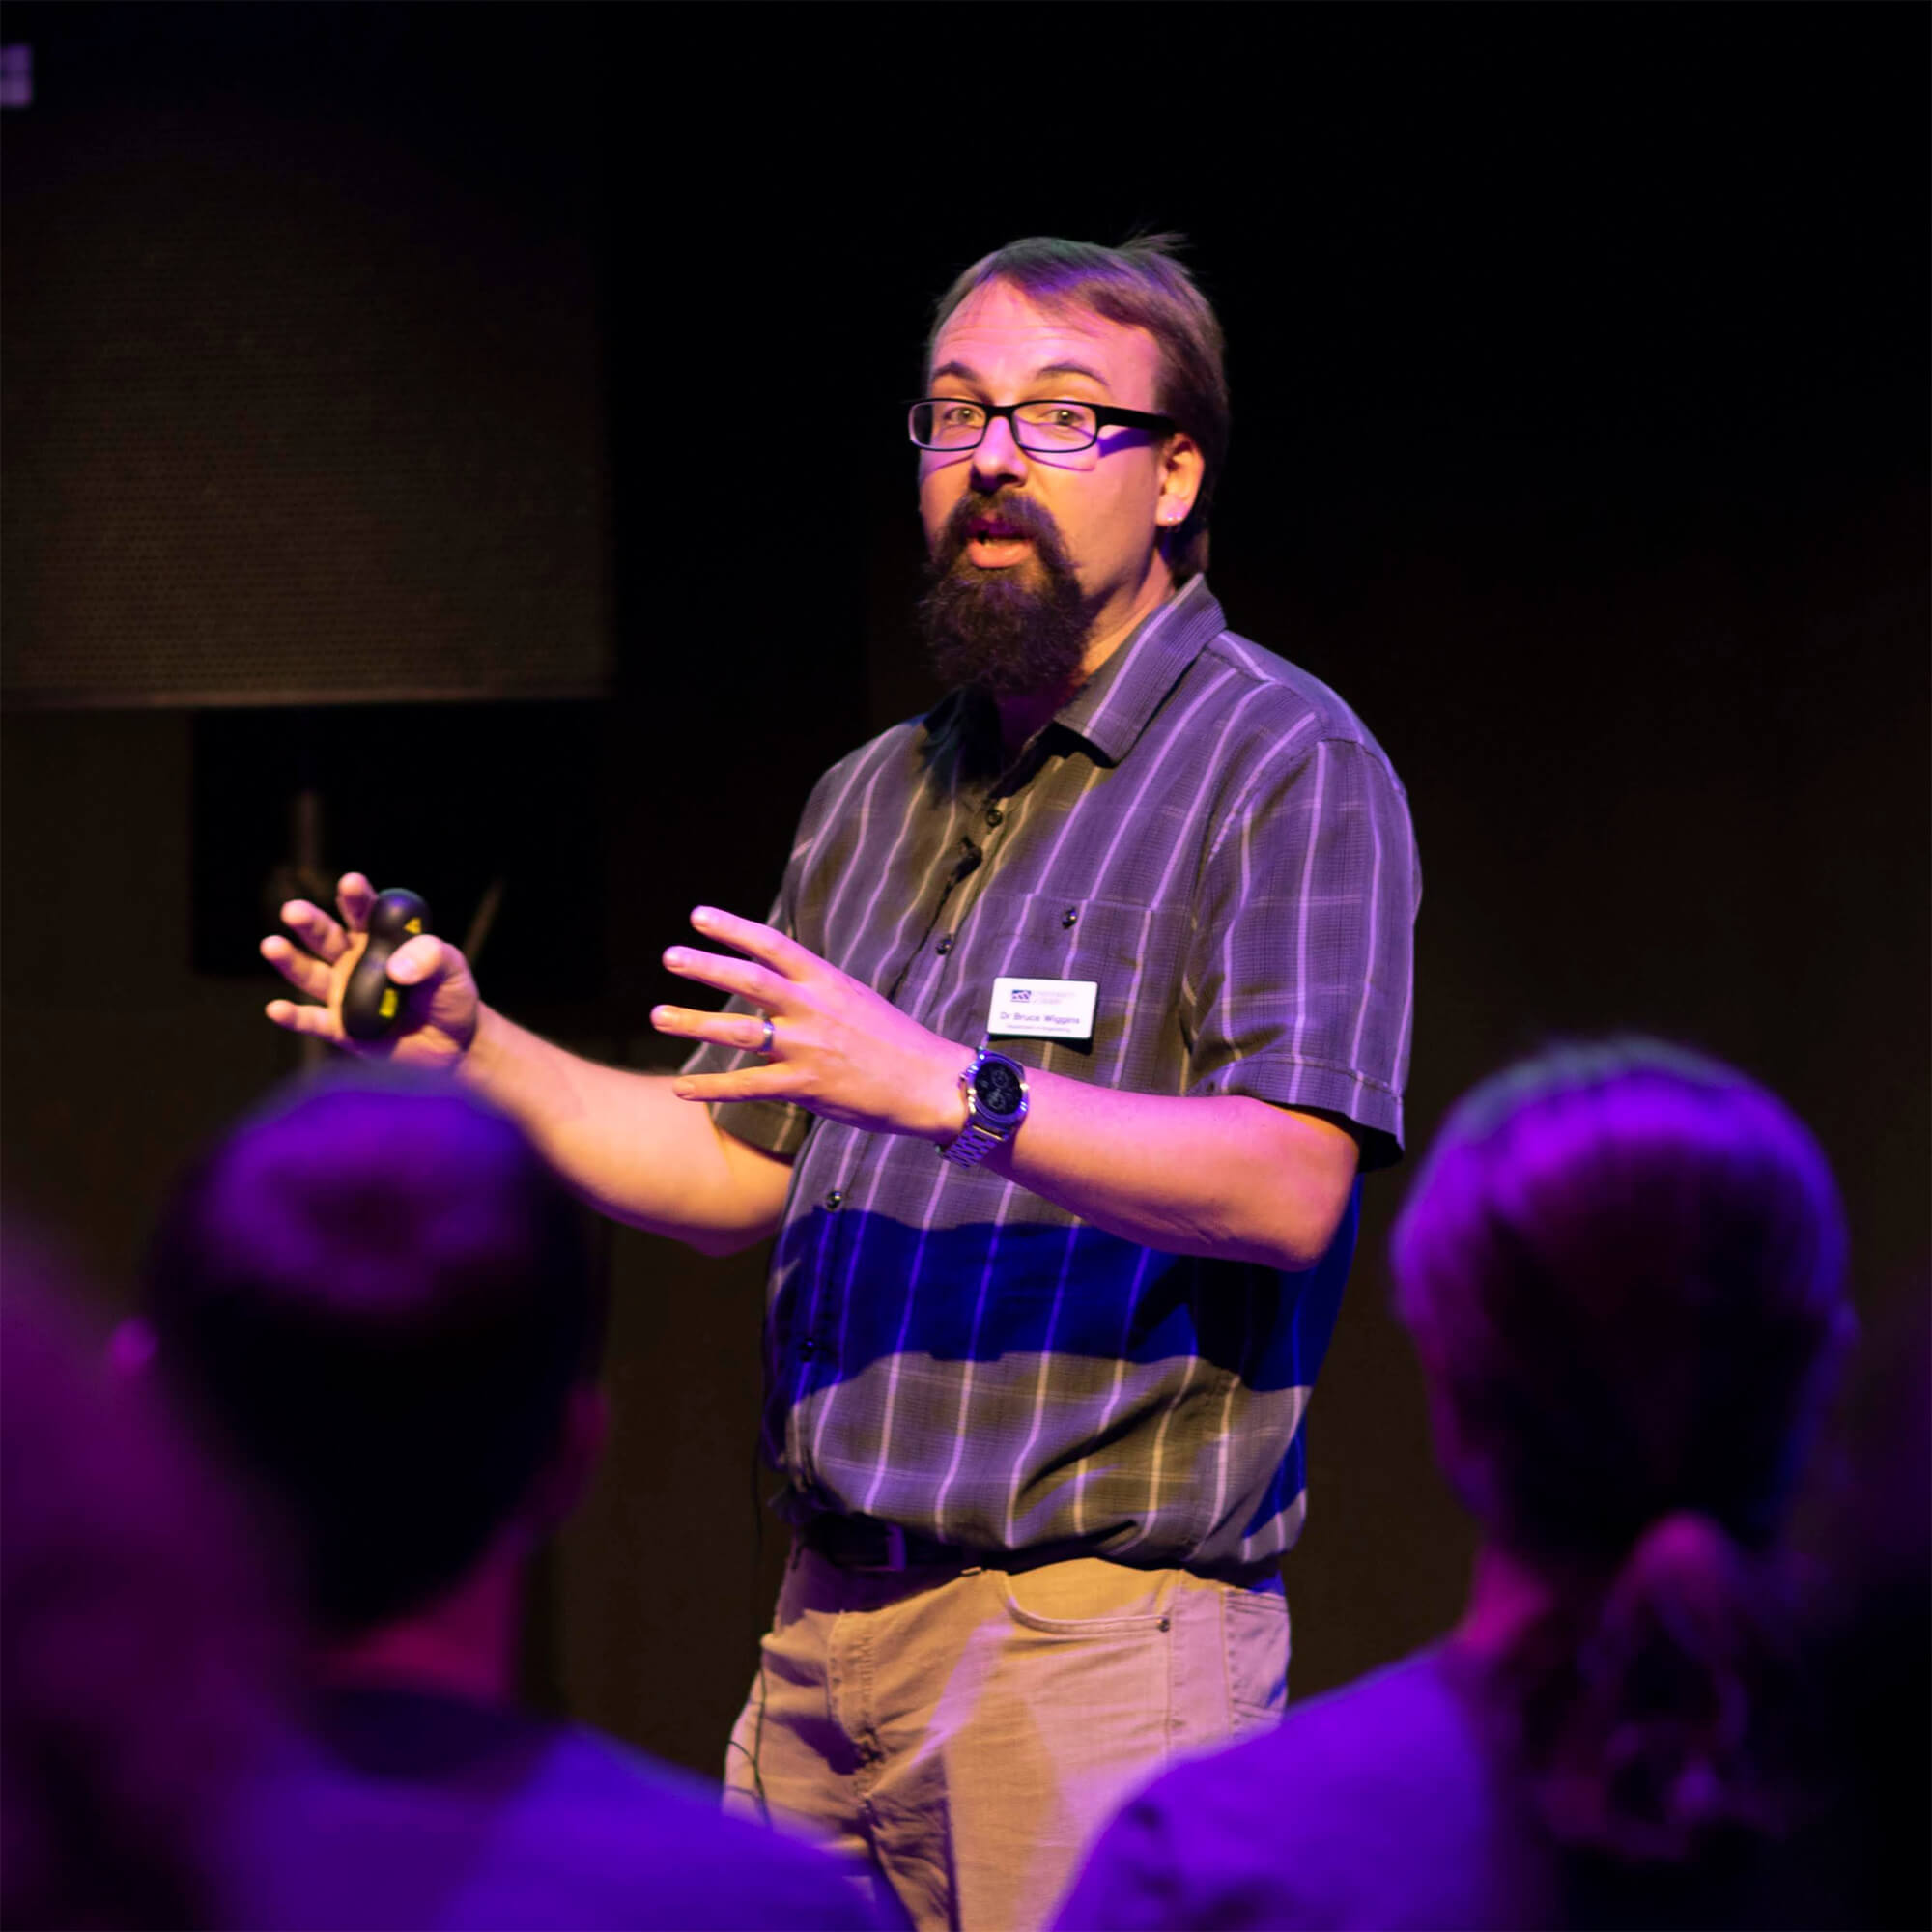 Dr Bruce Wiggins presenting at Sounds in Space, 2018